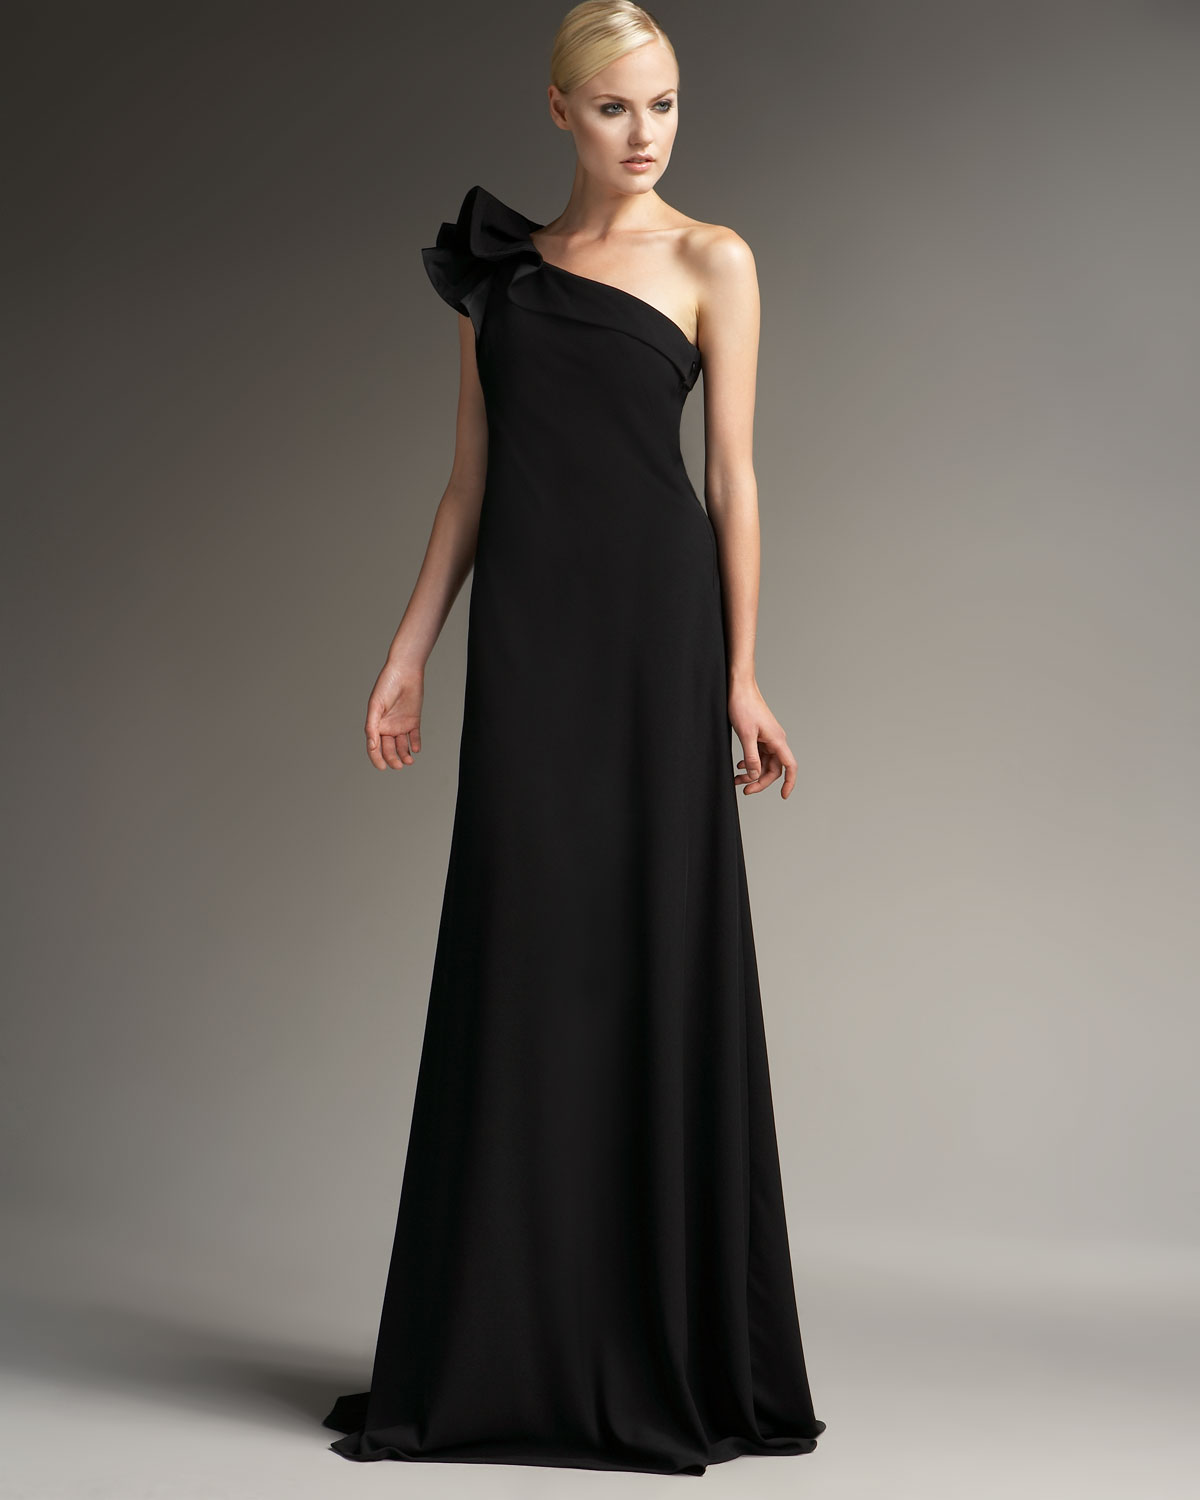 Nice Carmen Marc Valvo One Shoulder Gown Image - Best Evening Gown ...